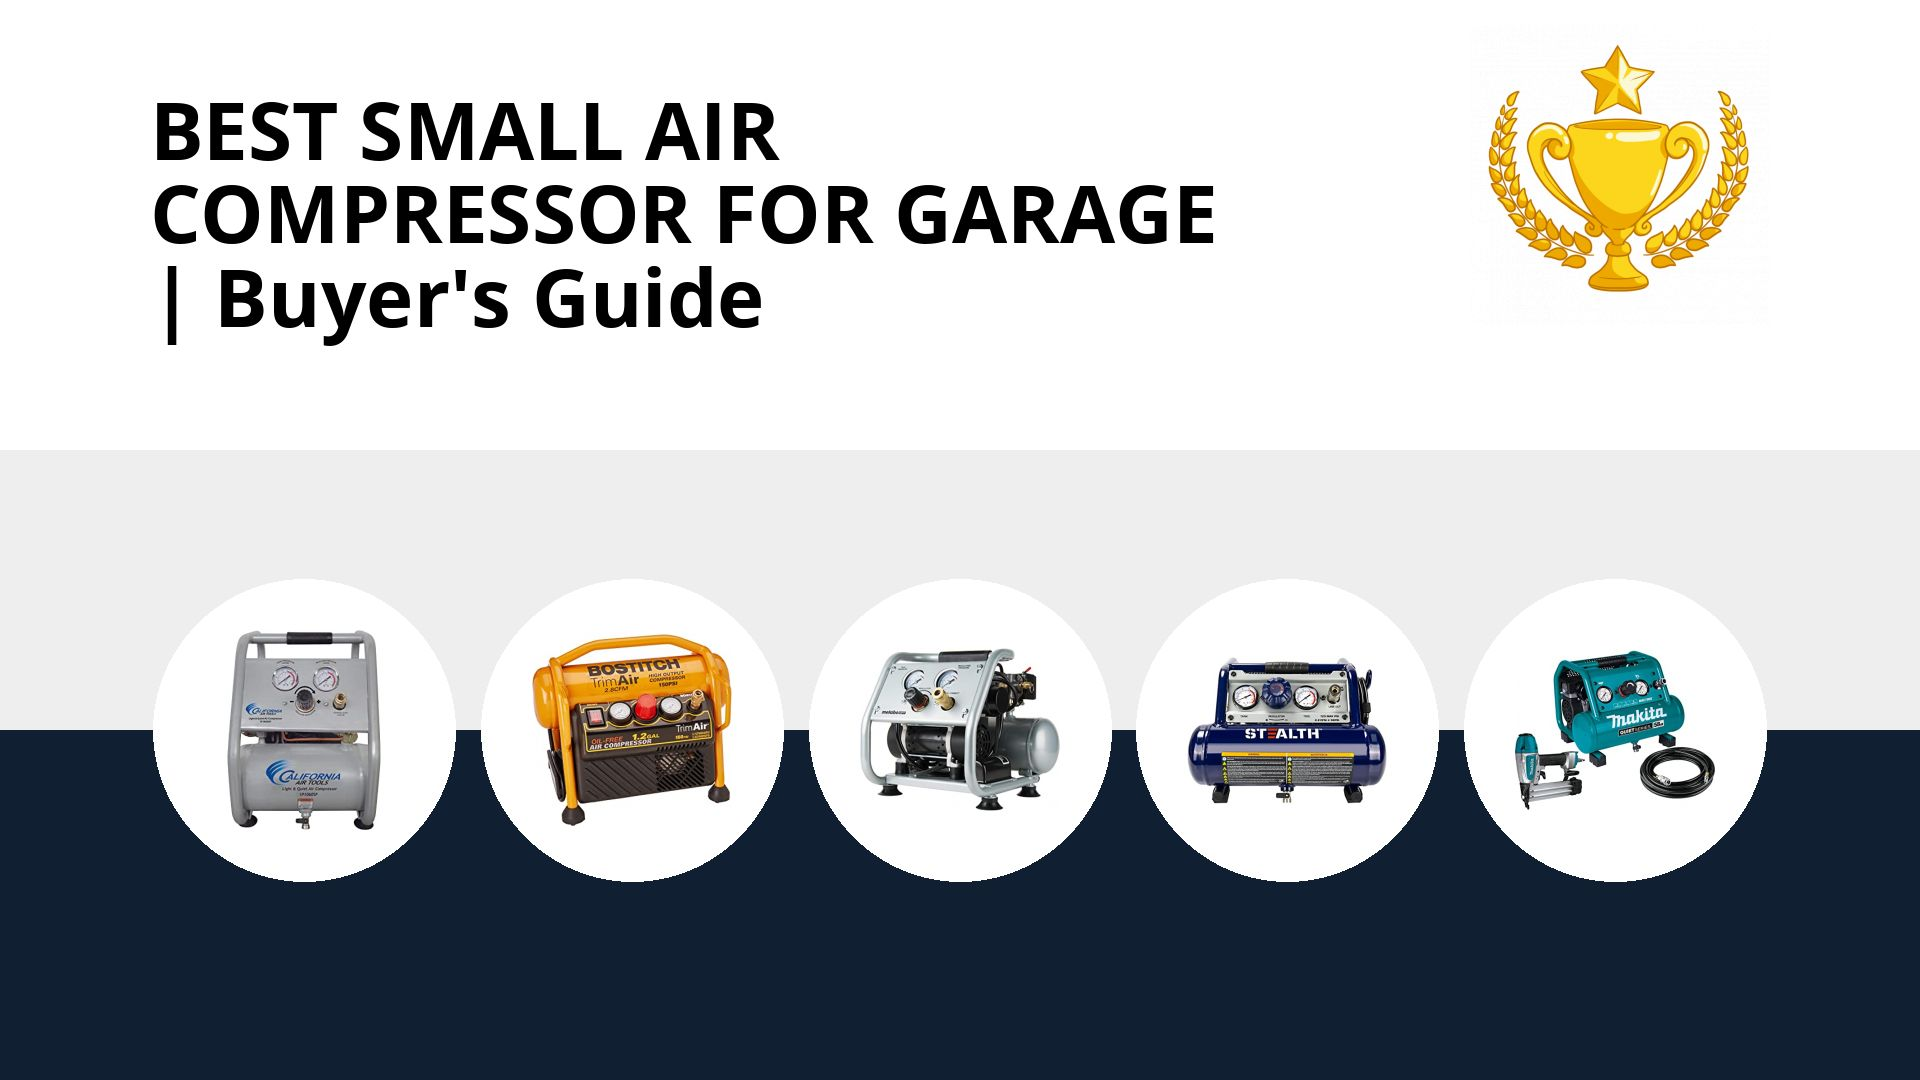 Best Small Air Compressor For Garage: image